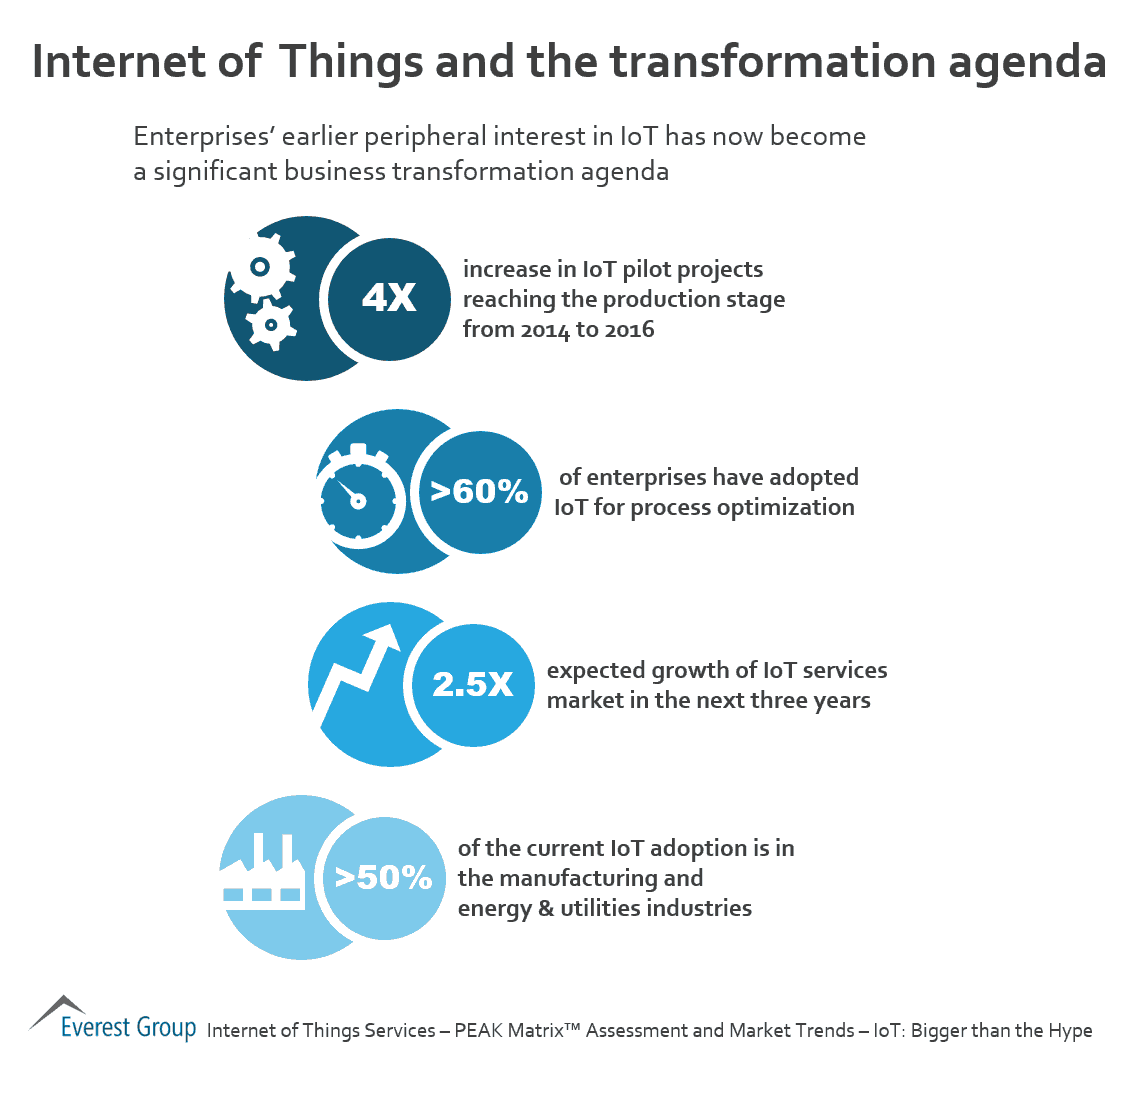 iot-and-transformation